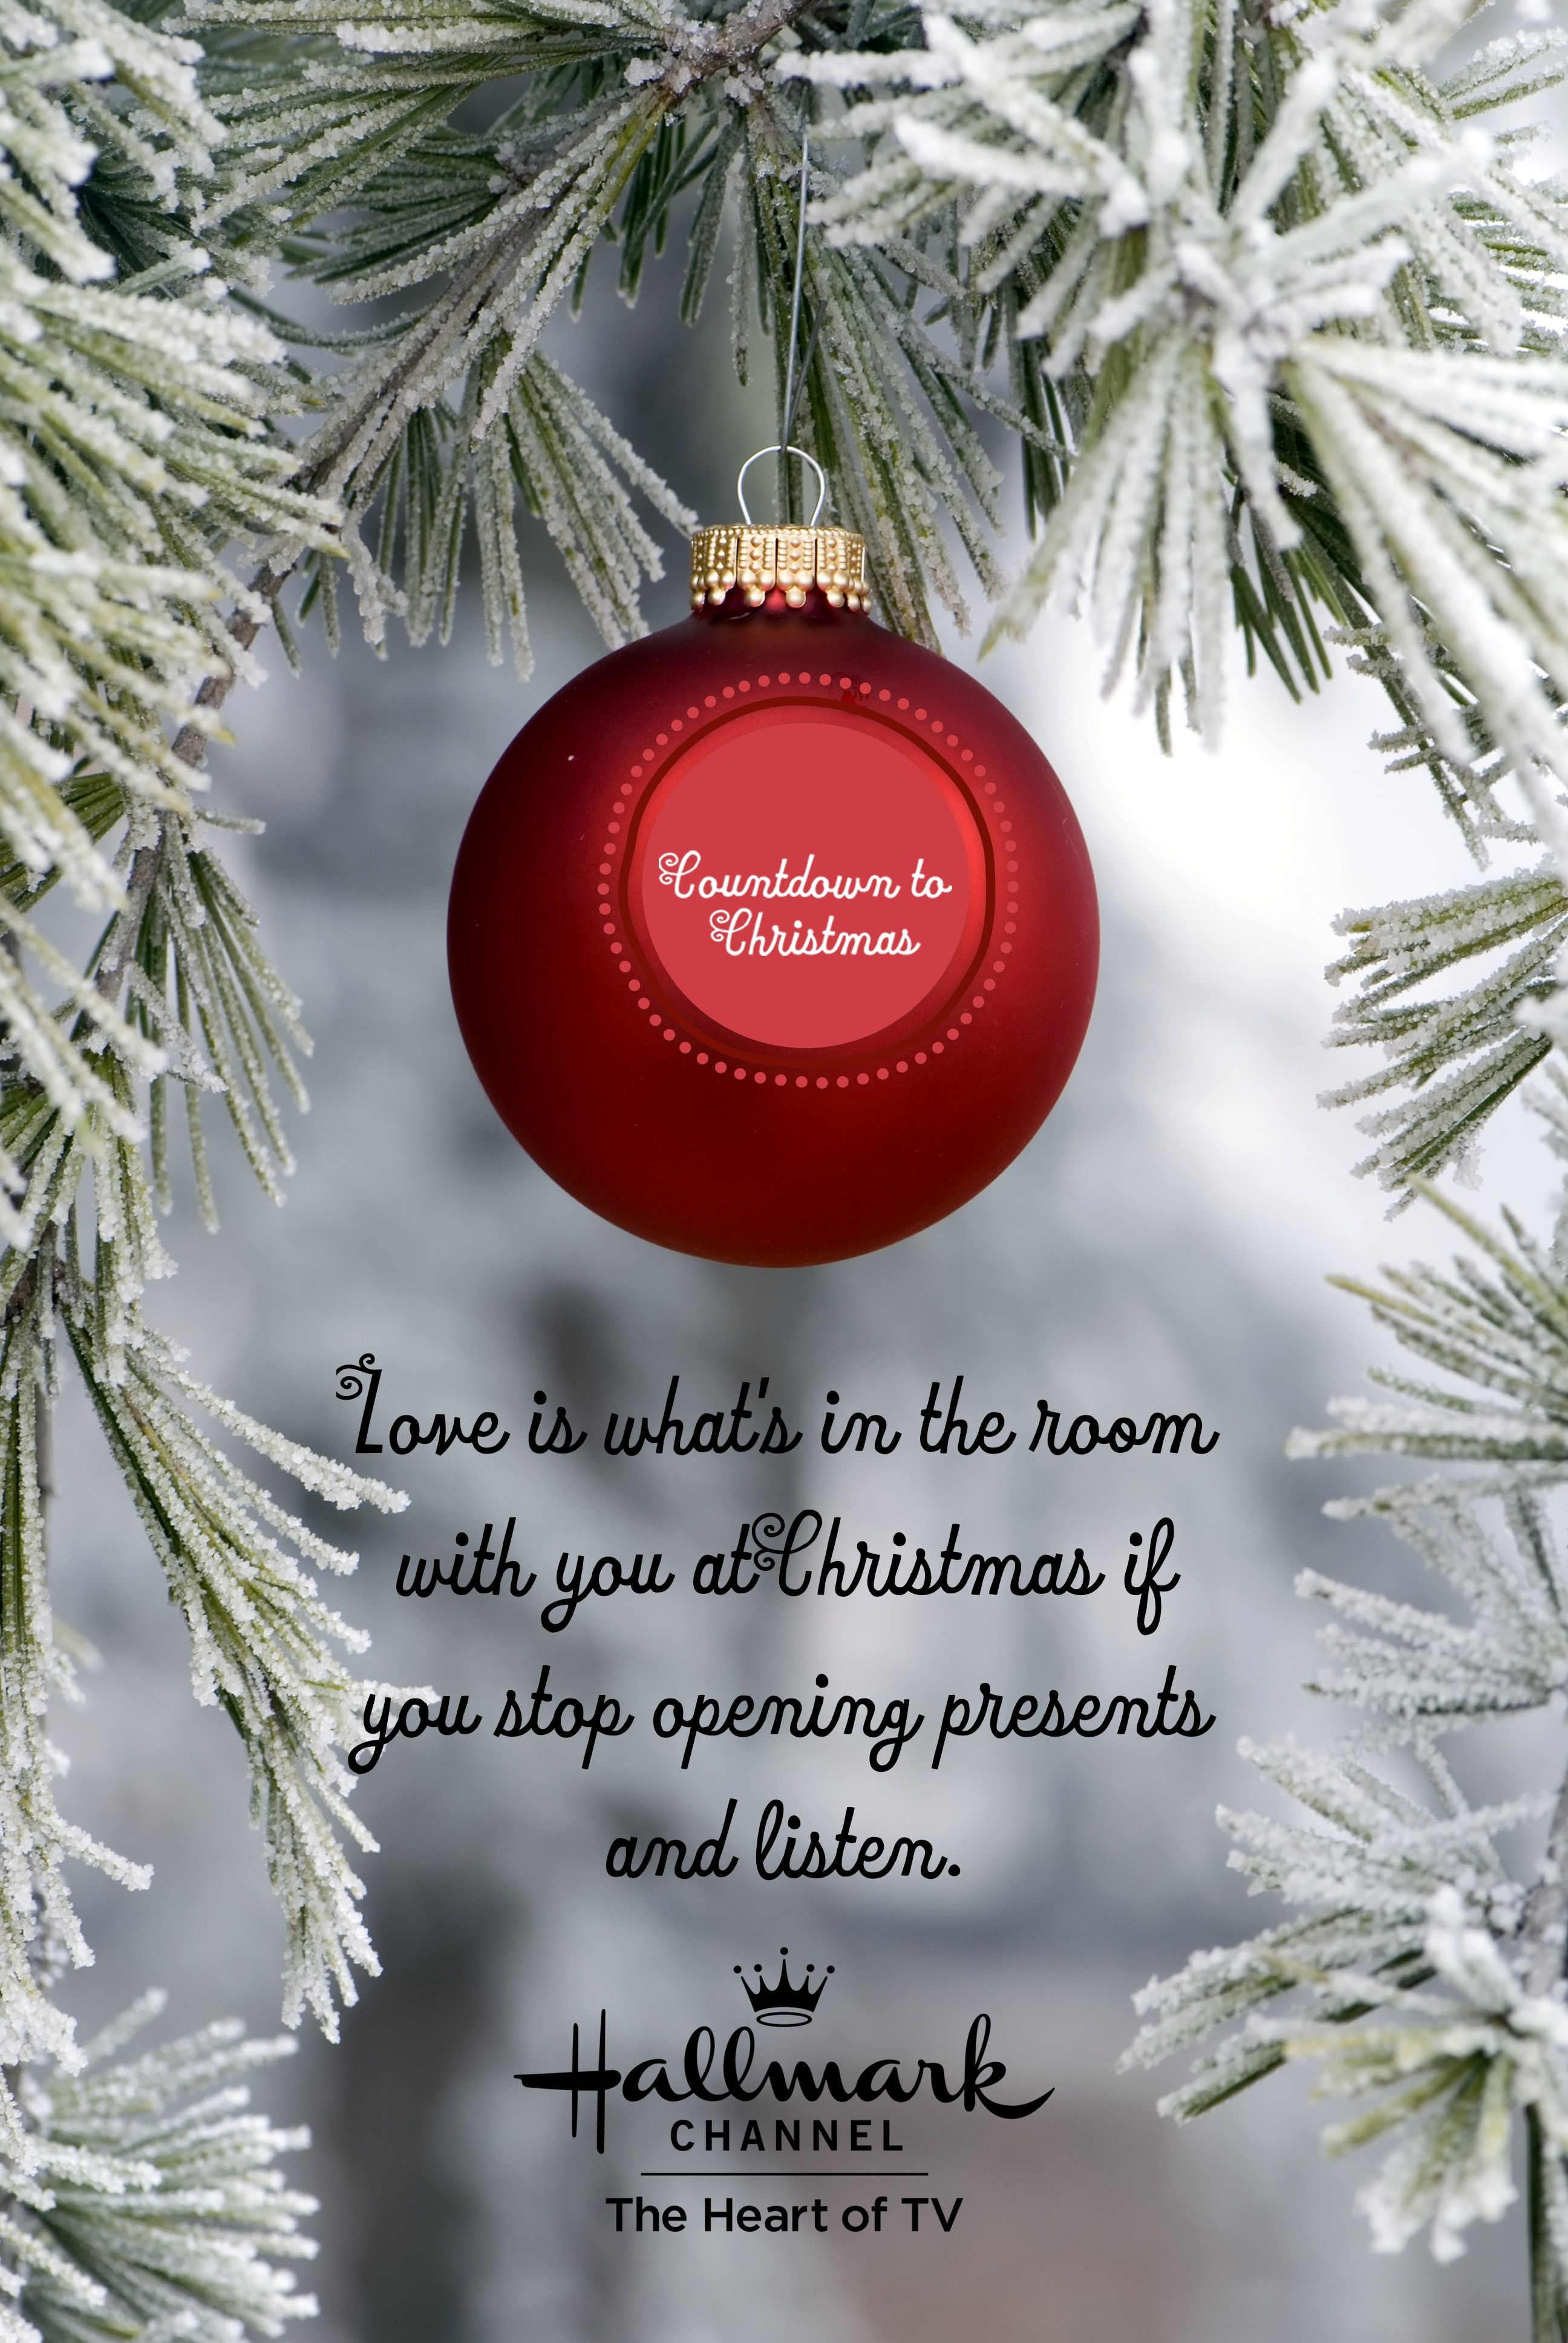 Love Is What S In The Room With You At Christmas If You Stop Opening Presents And Listen Christmas Countdown Christmas Fun Hallmark Channel Christmas Movies